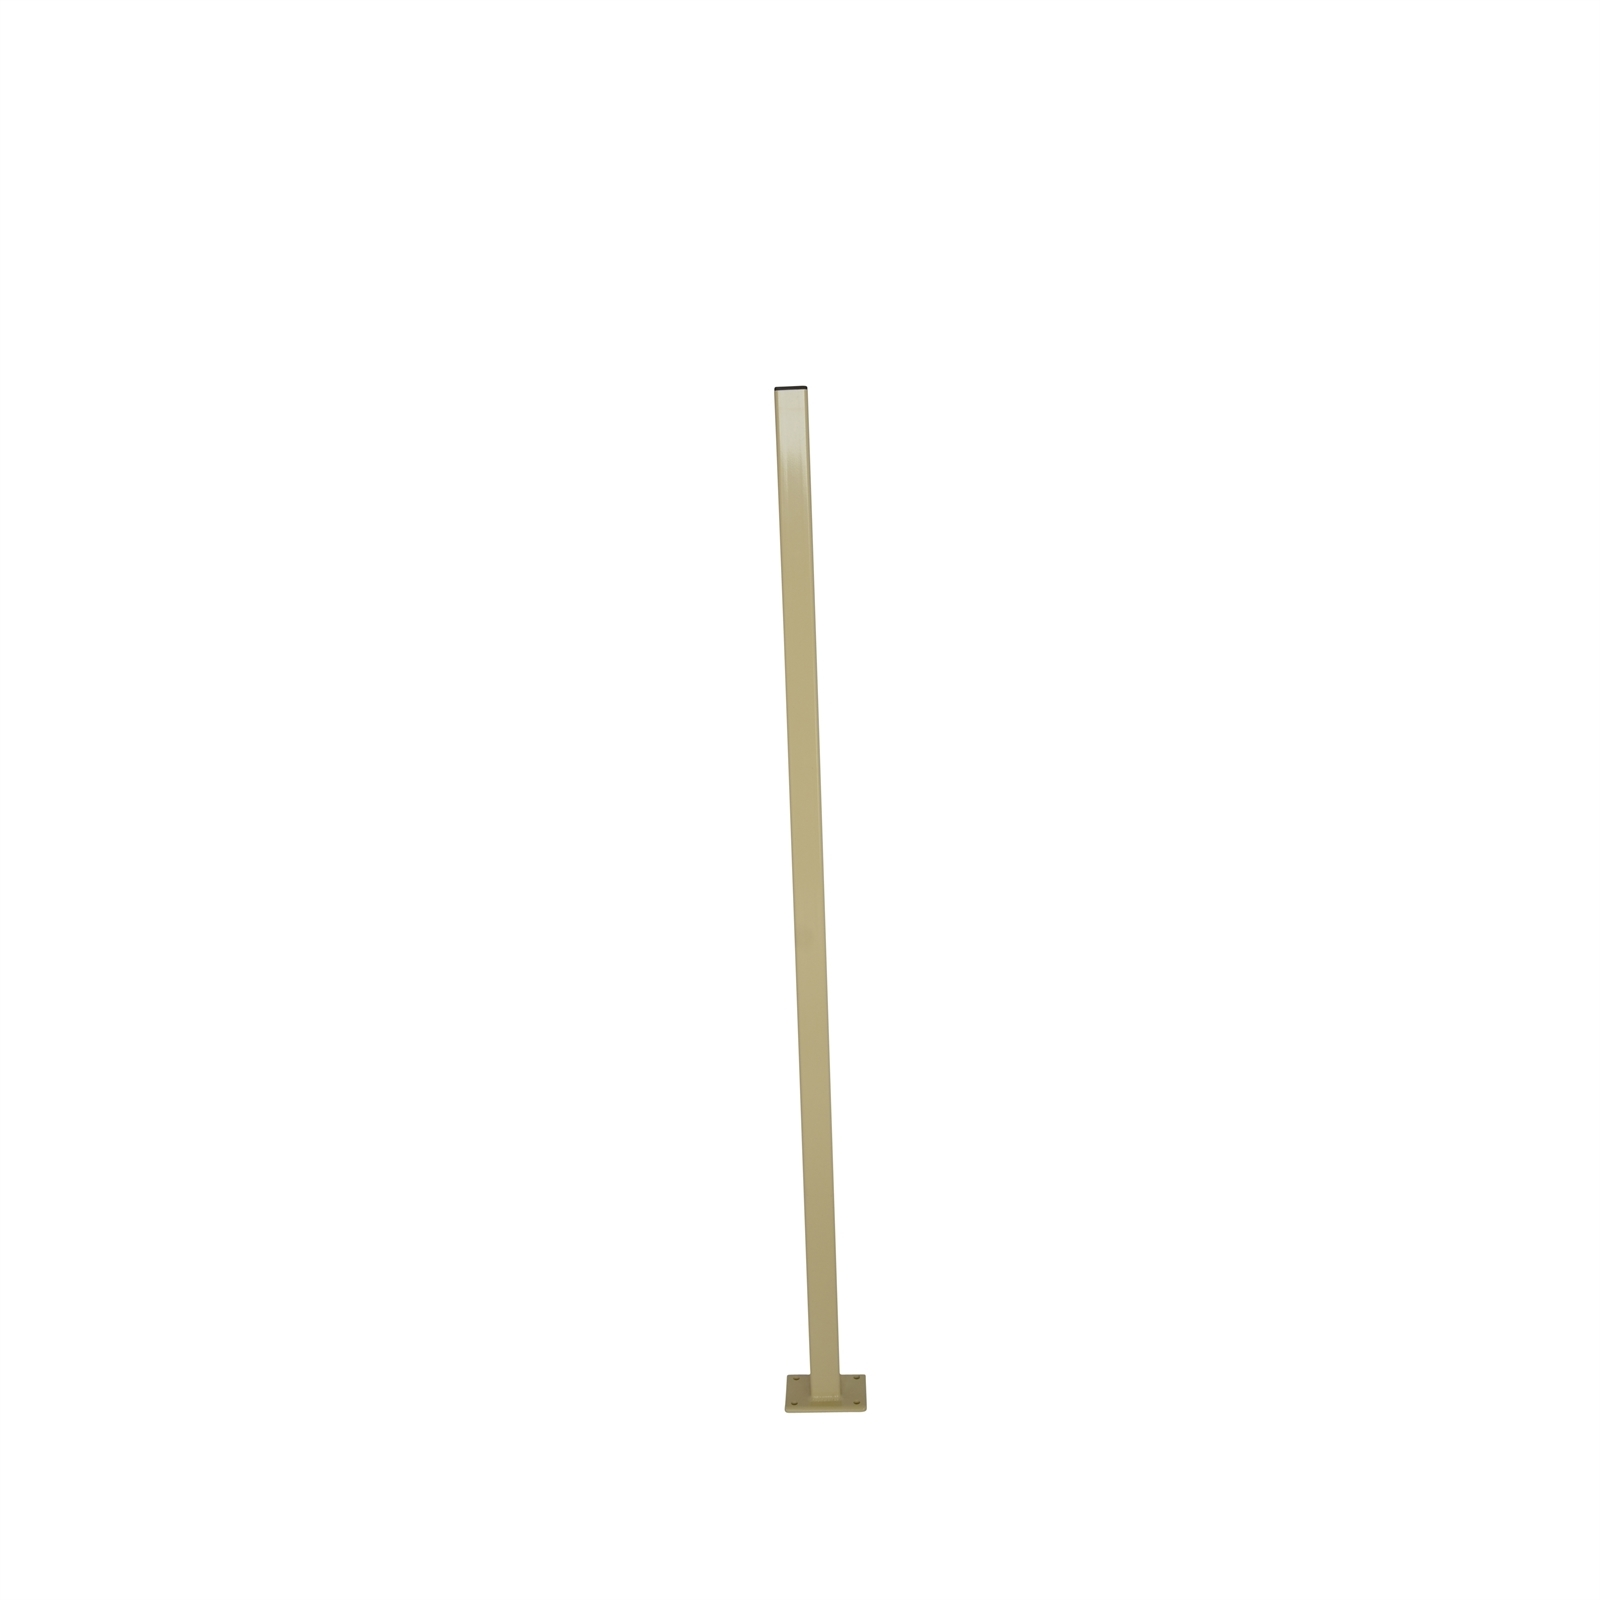 Protector Aluminium 50 x 50 x 1600mm Primrose Flanged Fence Post With Cap